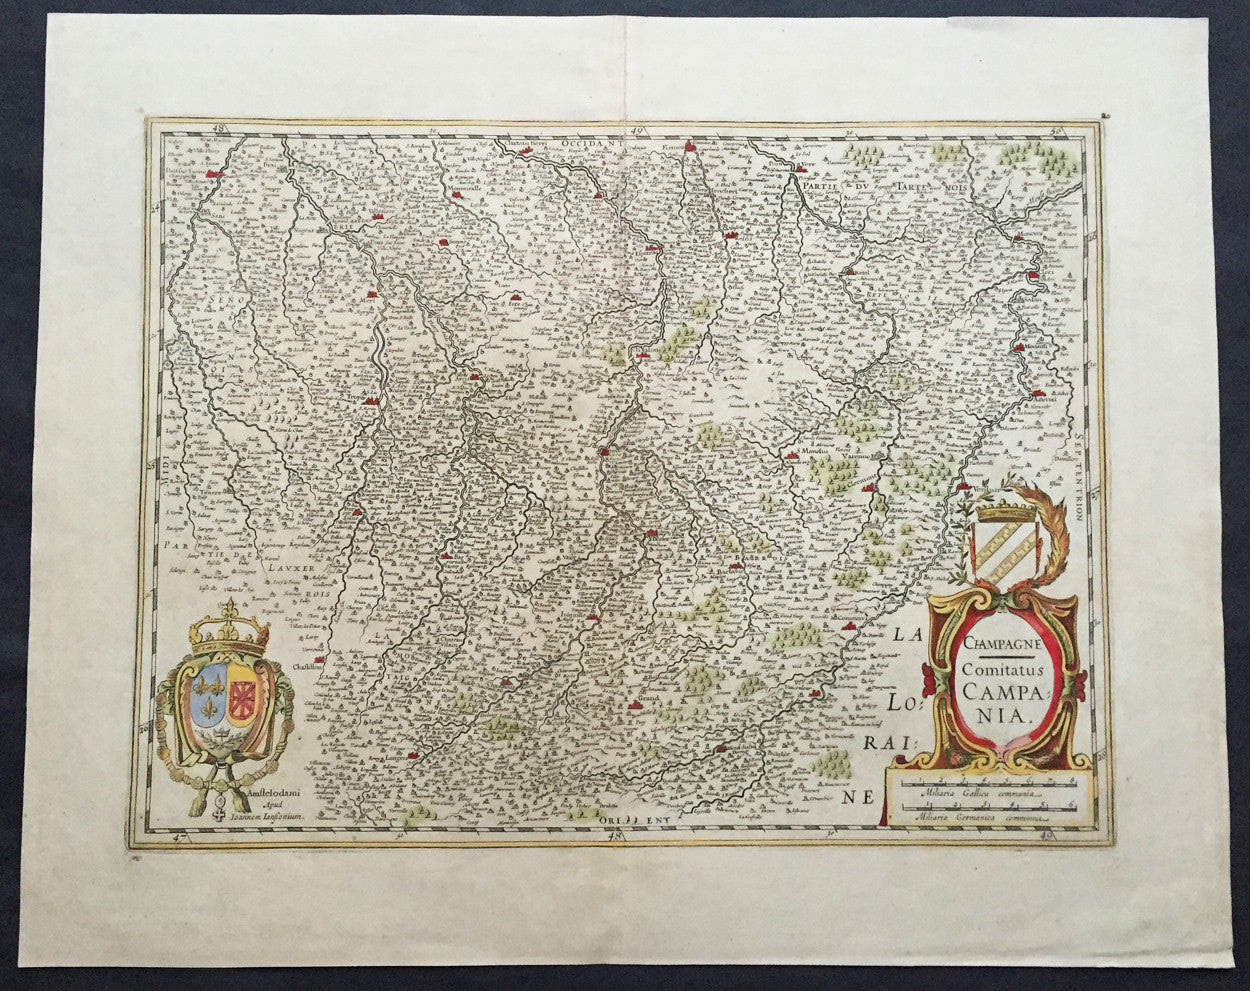 1619 Jansson Large Old Antique Map of the Champagne Region of